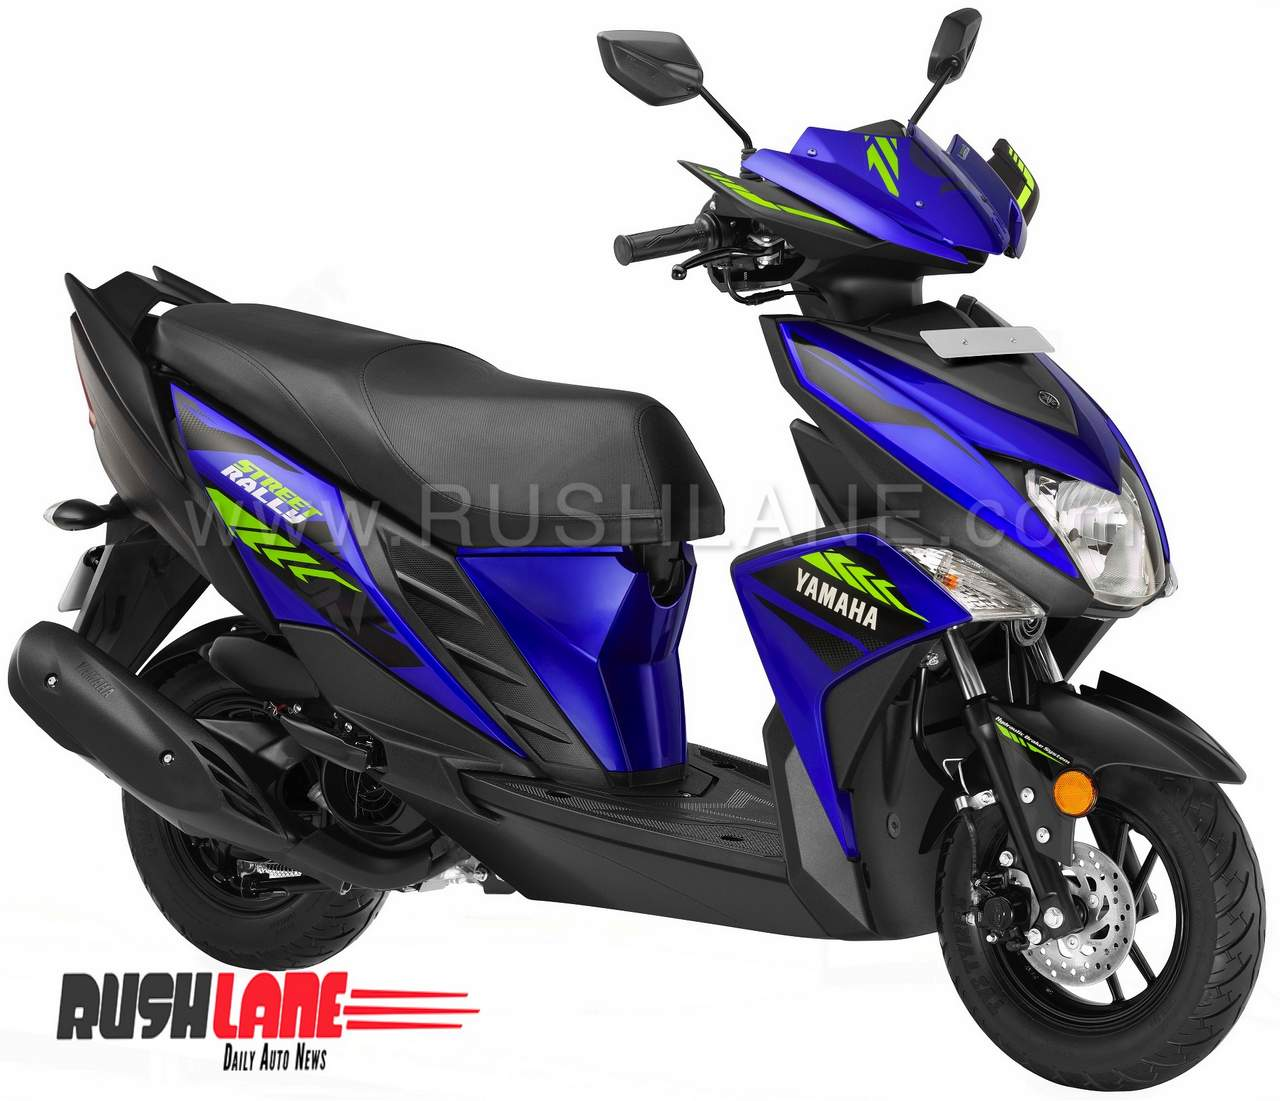 2018 yamaha rayzr street rally scooter arrives at dealer